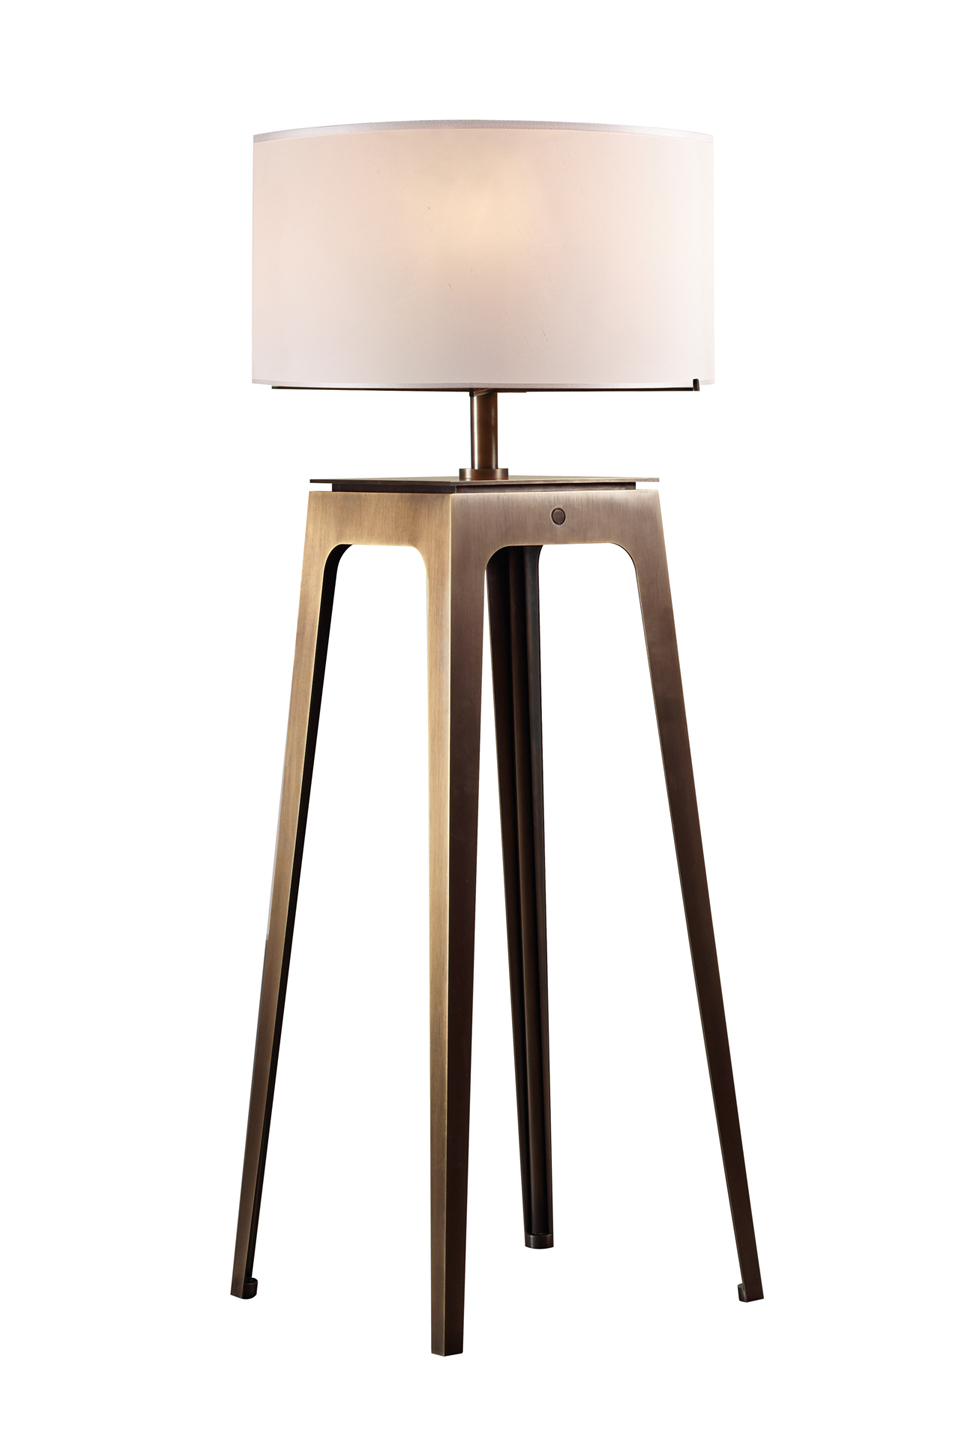 Warwick is a floor bronze LED lamp with a silk lampshade with handmade edge, from Promemoria's The London Collection | Promemoria